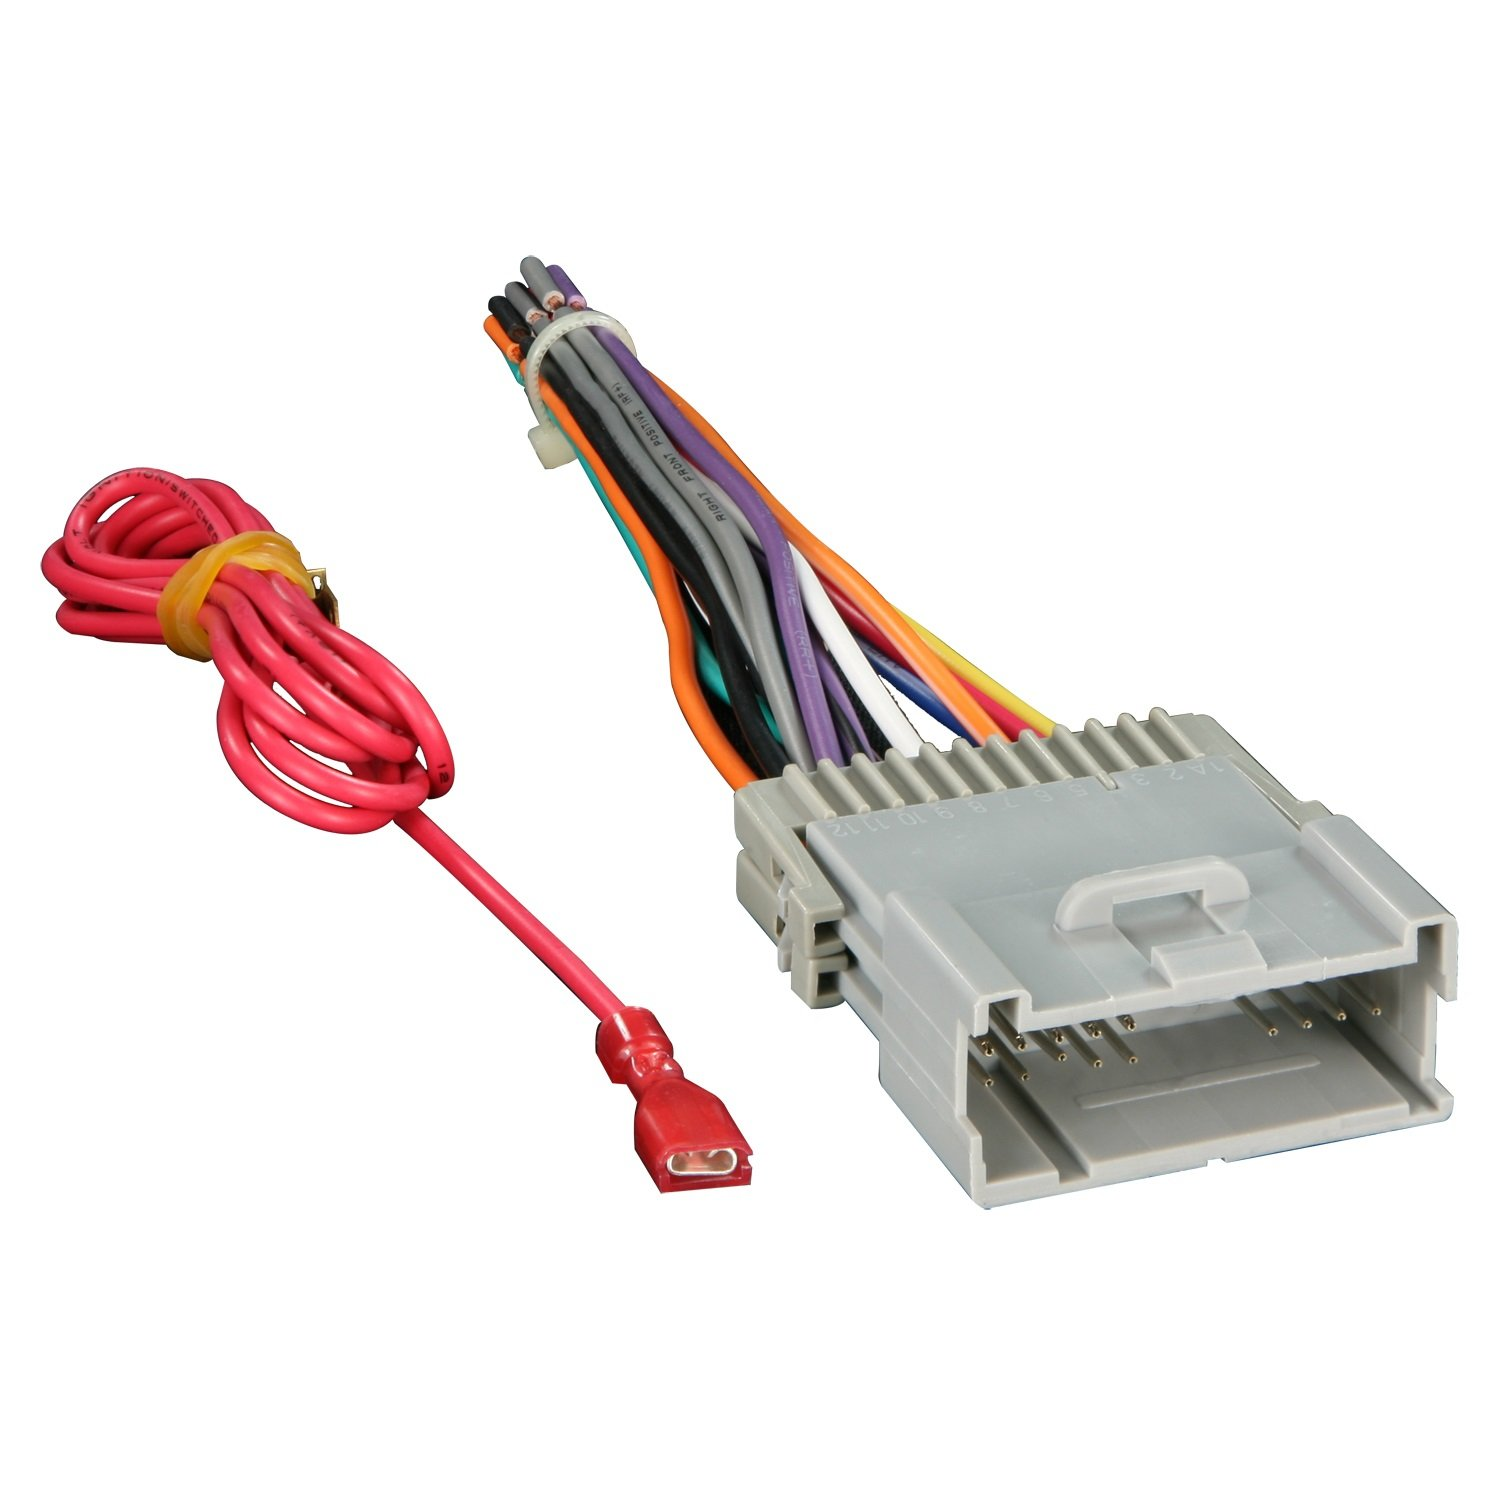 61eewxp9orL._SL1500_ amazon com metra 70 2003 radio wiring harness for gm 98 08 2003 Nissan Xterra Radio Wiring at readyjetset.co